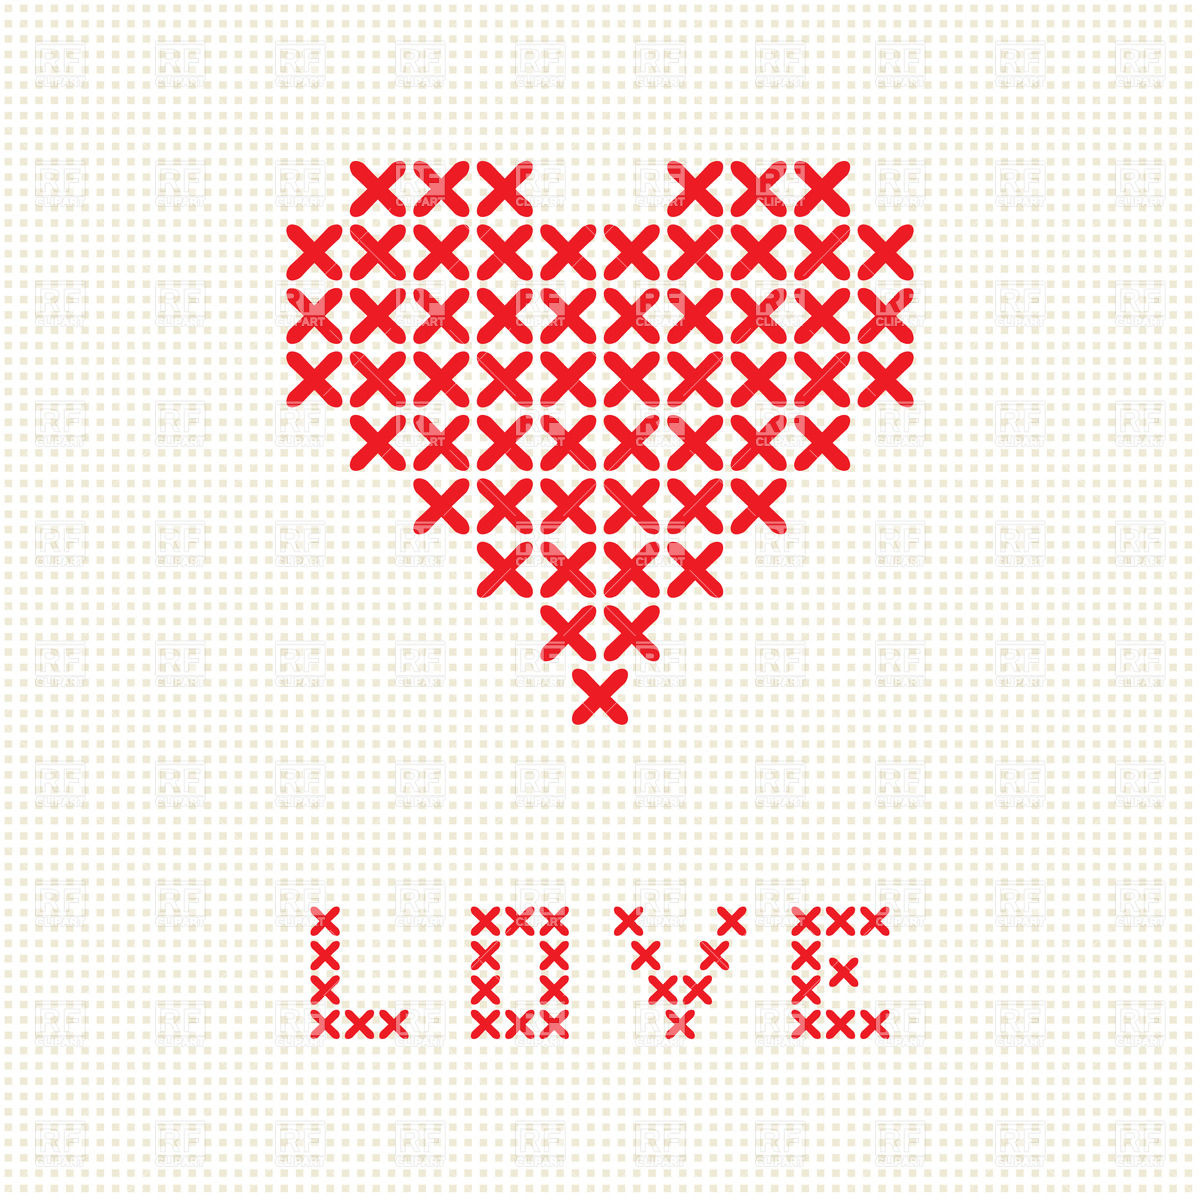 1200x1200 Abstract Heart Made Of Red Crosses Vector Image Vector Artwork